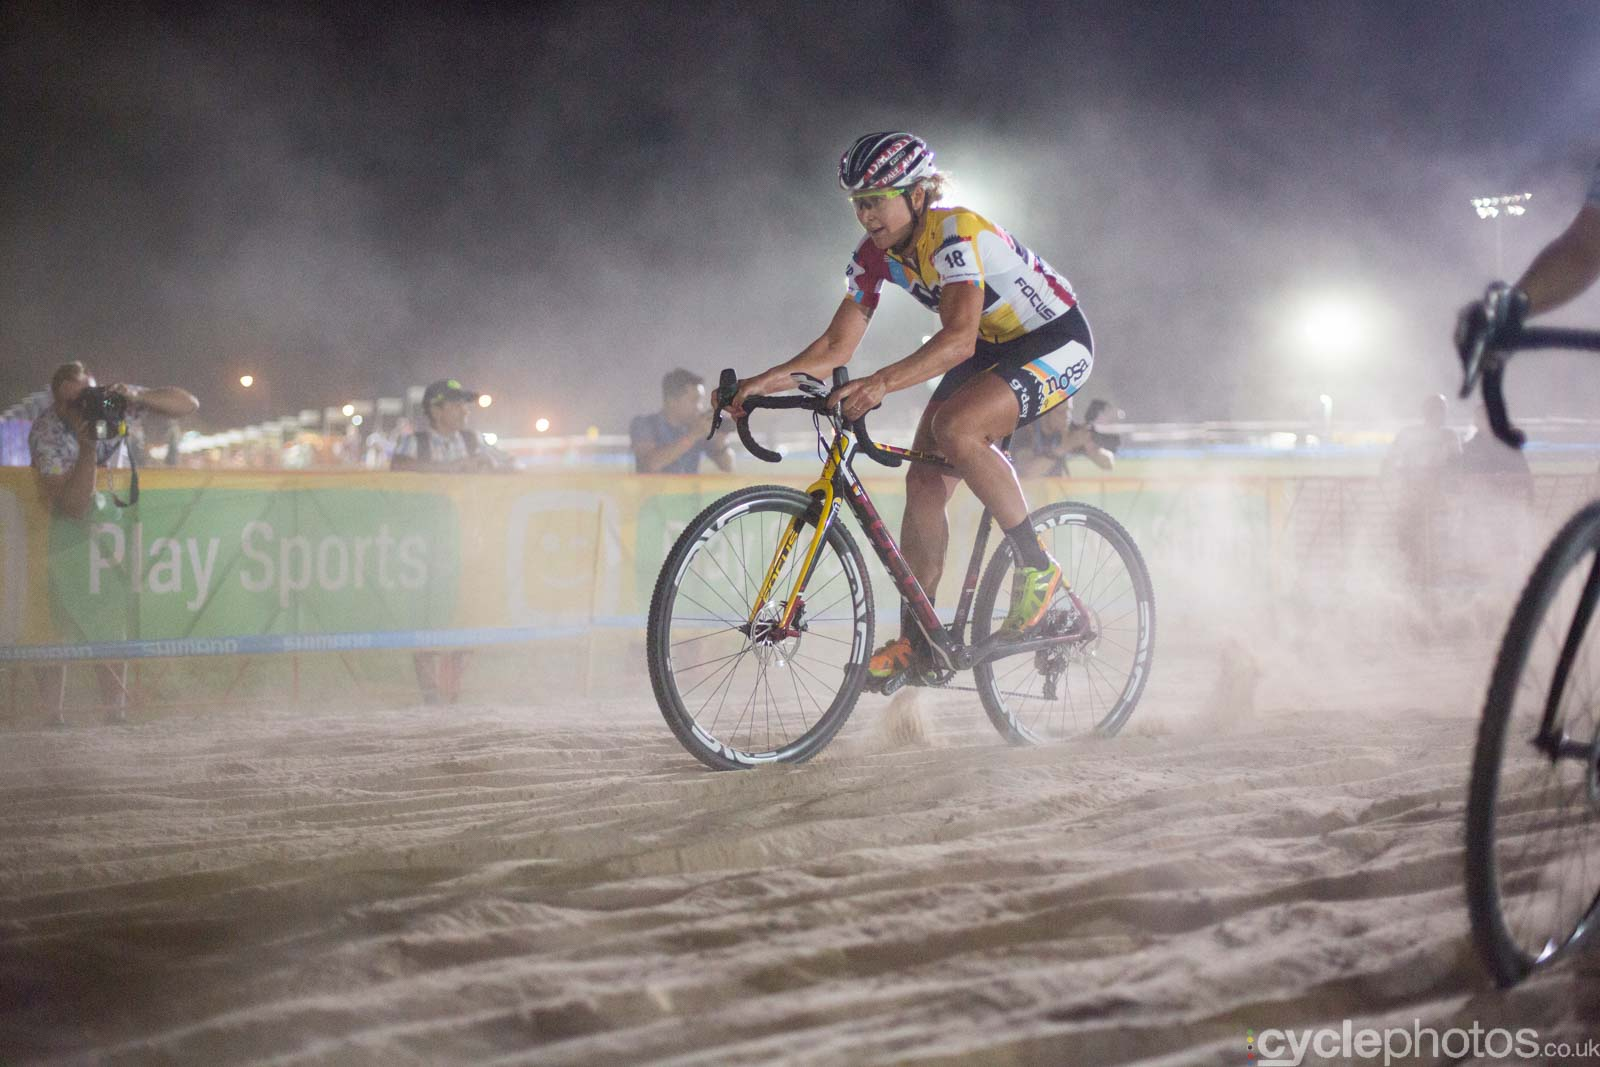 Meredith Miller rides through the only sandpit of Crossvegas, the first round of the 2015 UCI Cyclocross World race in Las Vegas, USA.